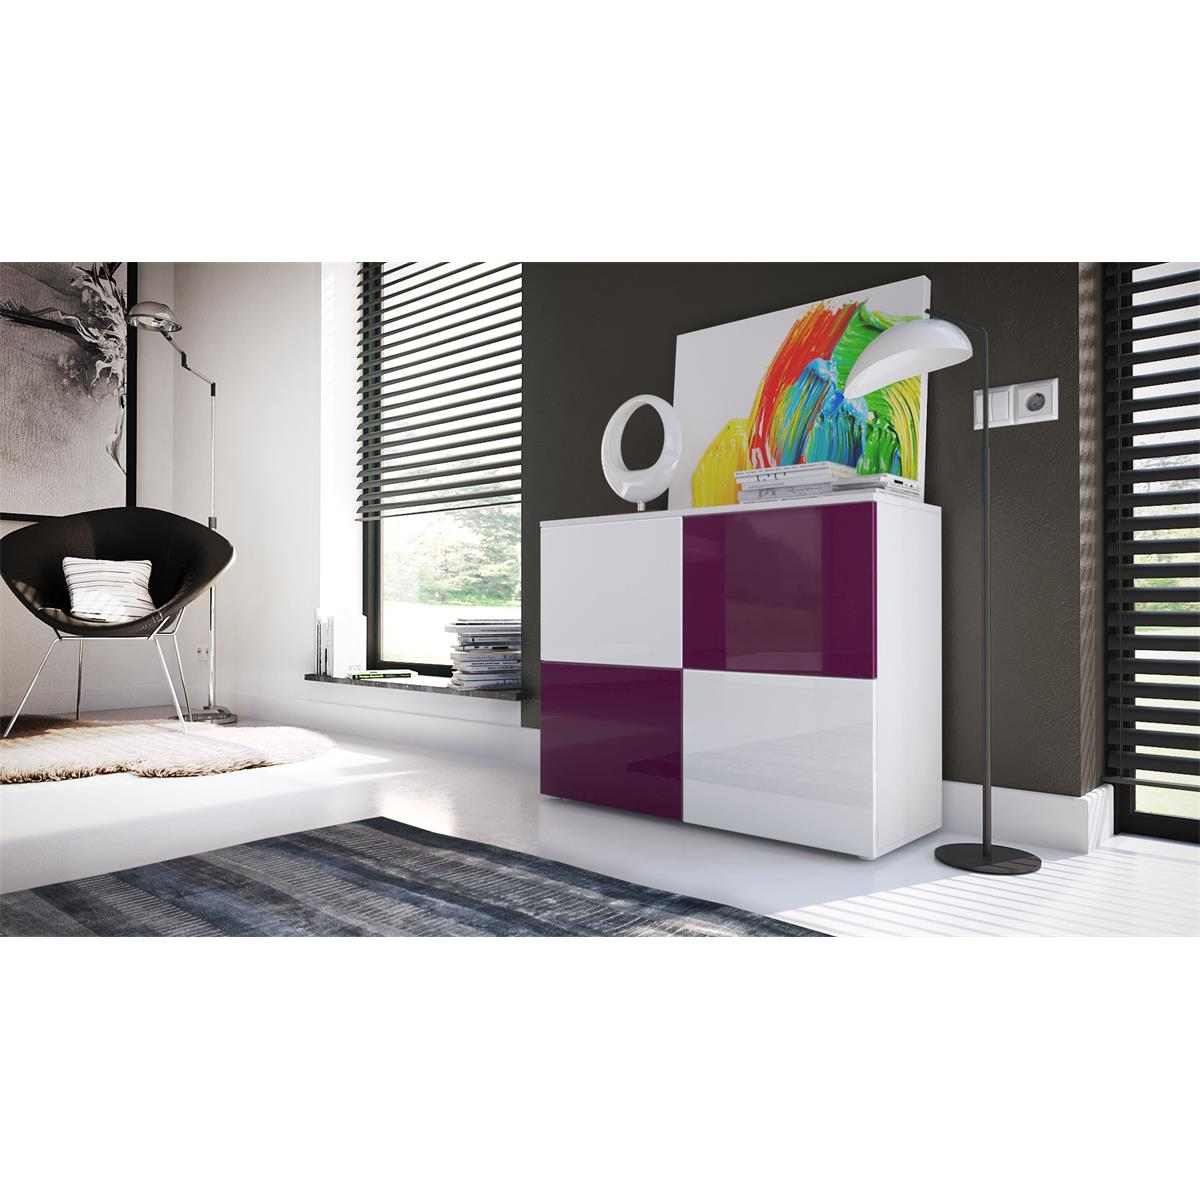 Kommode brombeer weis thewall kommode celle ii eiche - Schlafzimmer brombeer ...